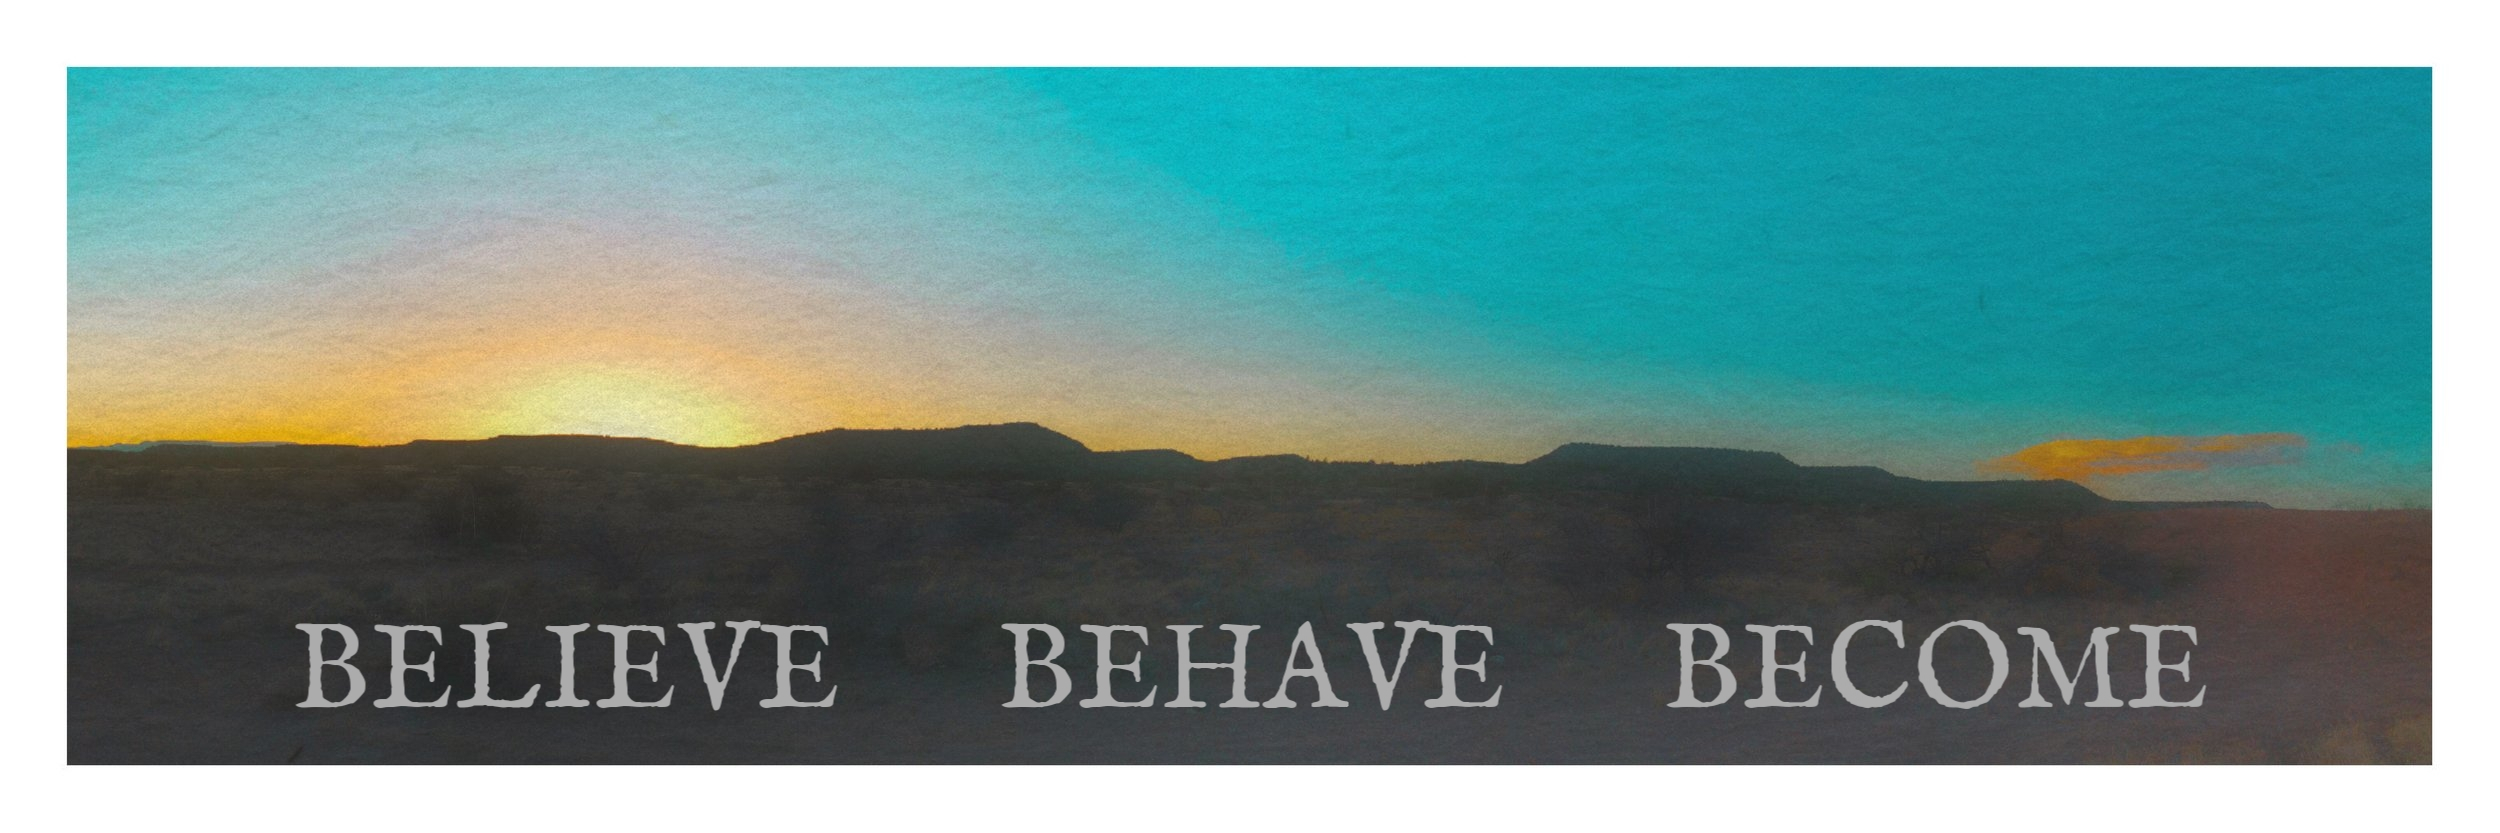 Believe, behave, become.